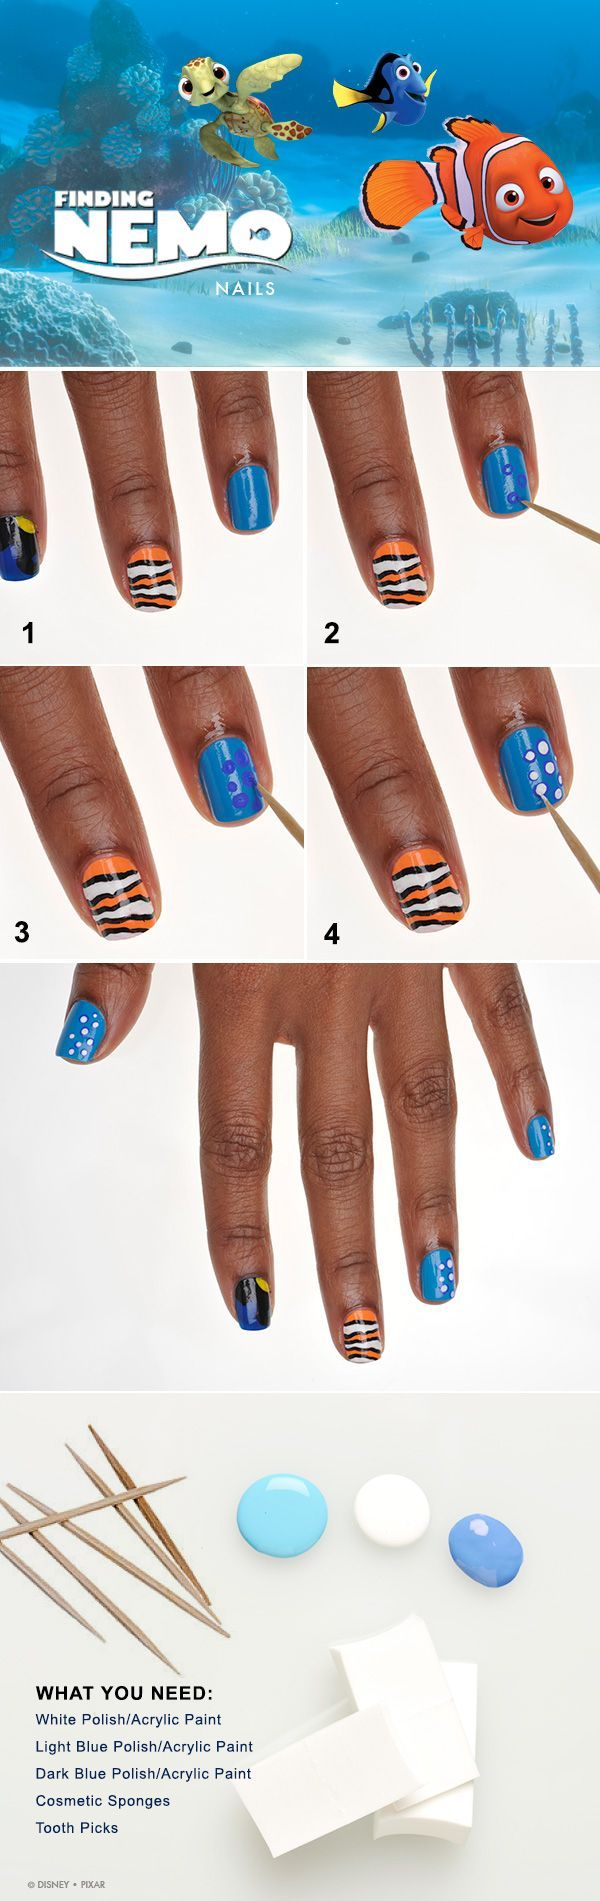 Show Your Disney Side: Nemo-Inspired Nail Tutorial. Brightt cobalt blue nails with black and yellow for Dory. Orange stripped nails for Marlin and Nemo!